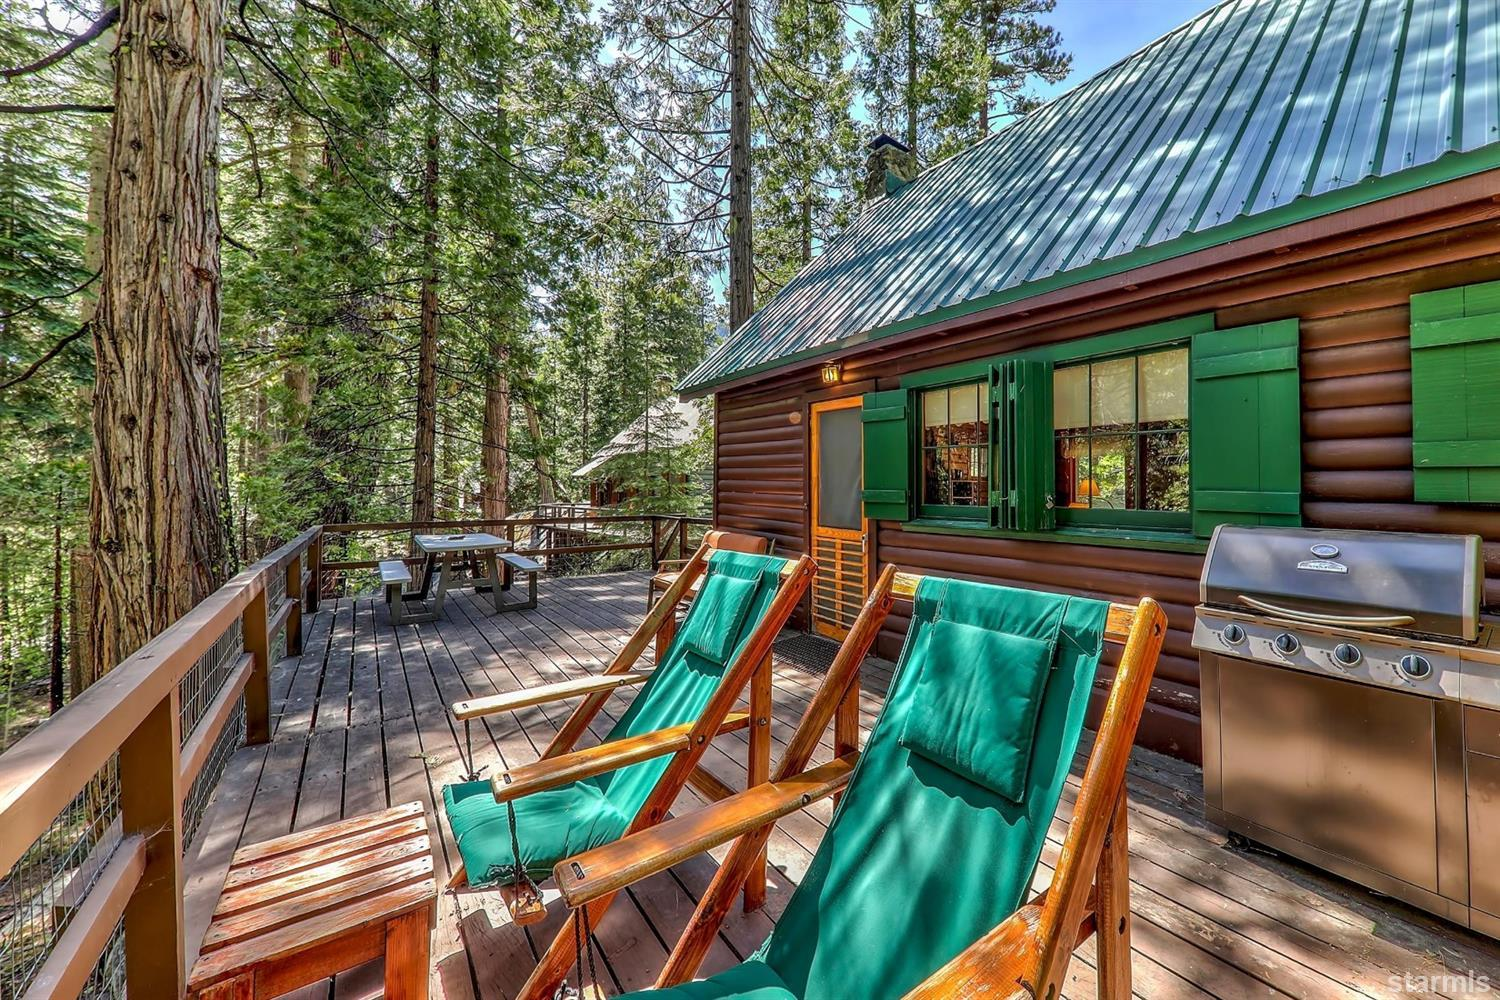 Forest Service - South Lake Tahoe and American River Canyon